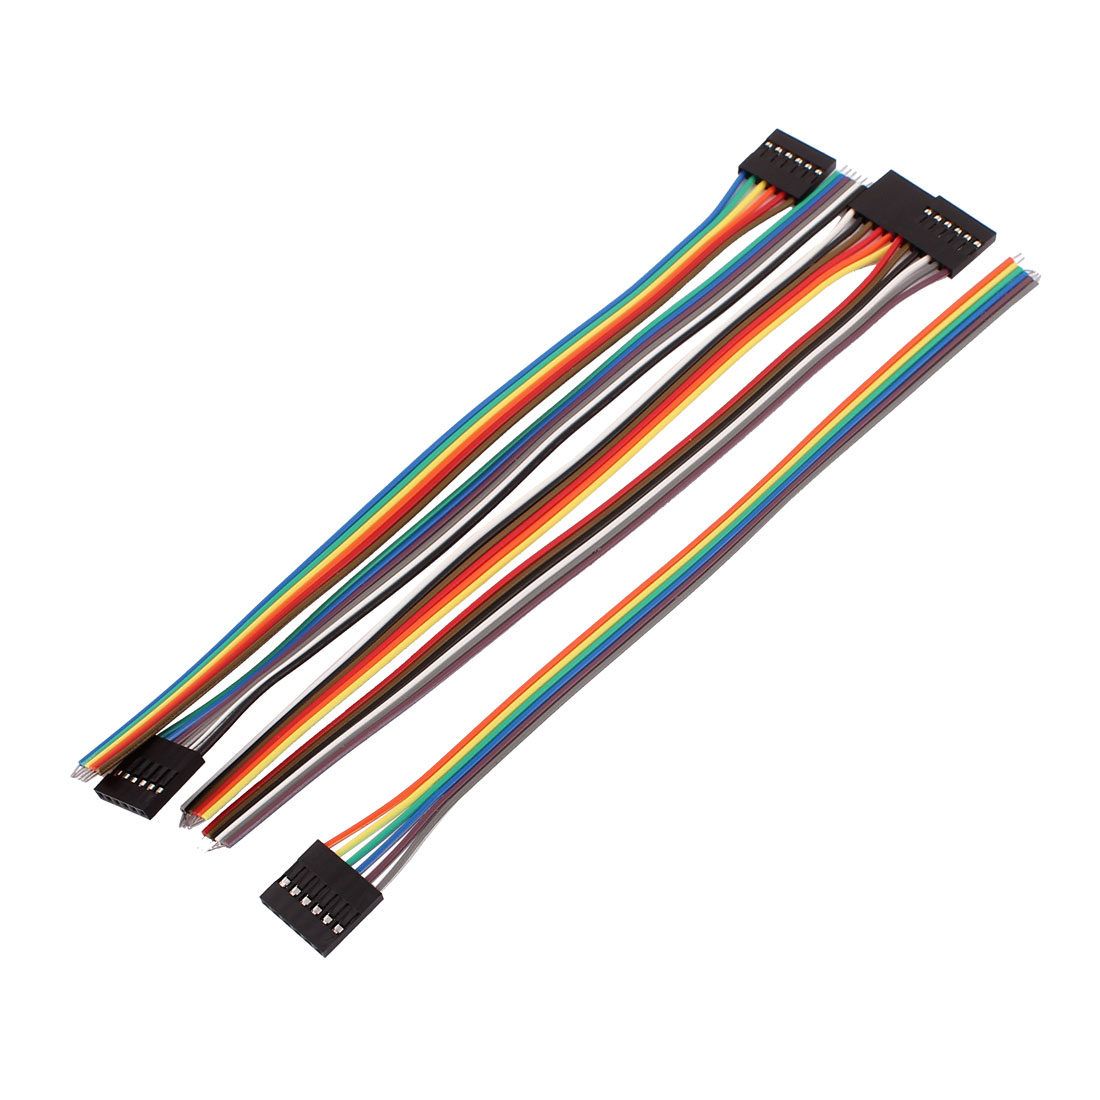 5Pcs 6P Jumper Wires Female Riband Cables Pi Pic Breadboard DIY 20mmLong Colored